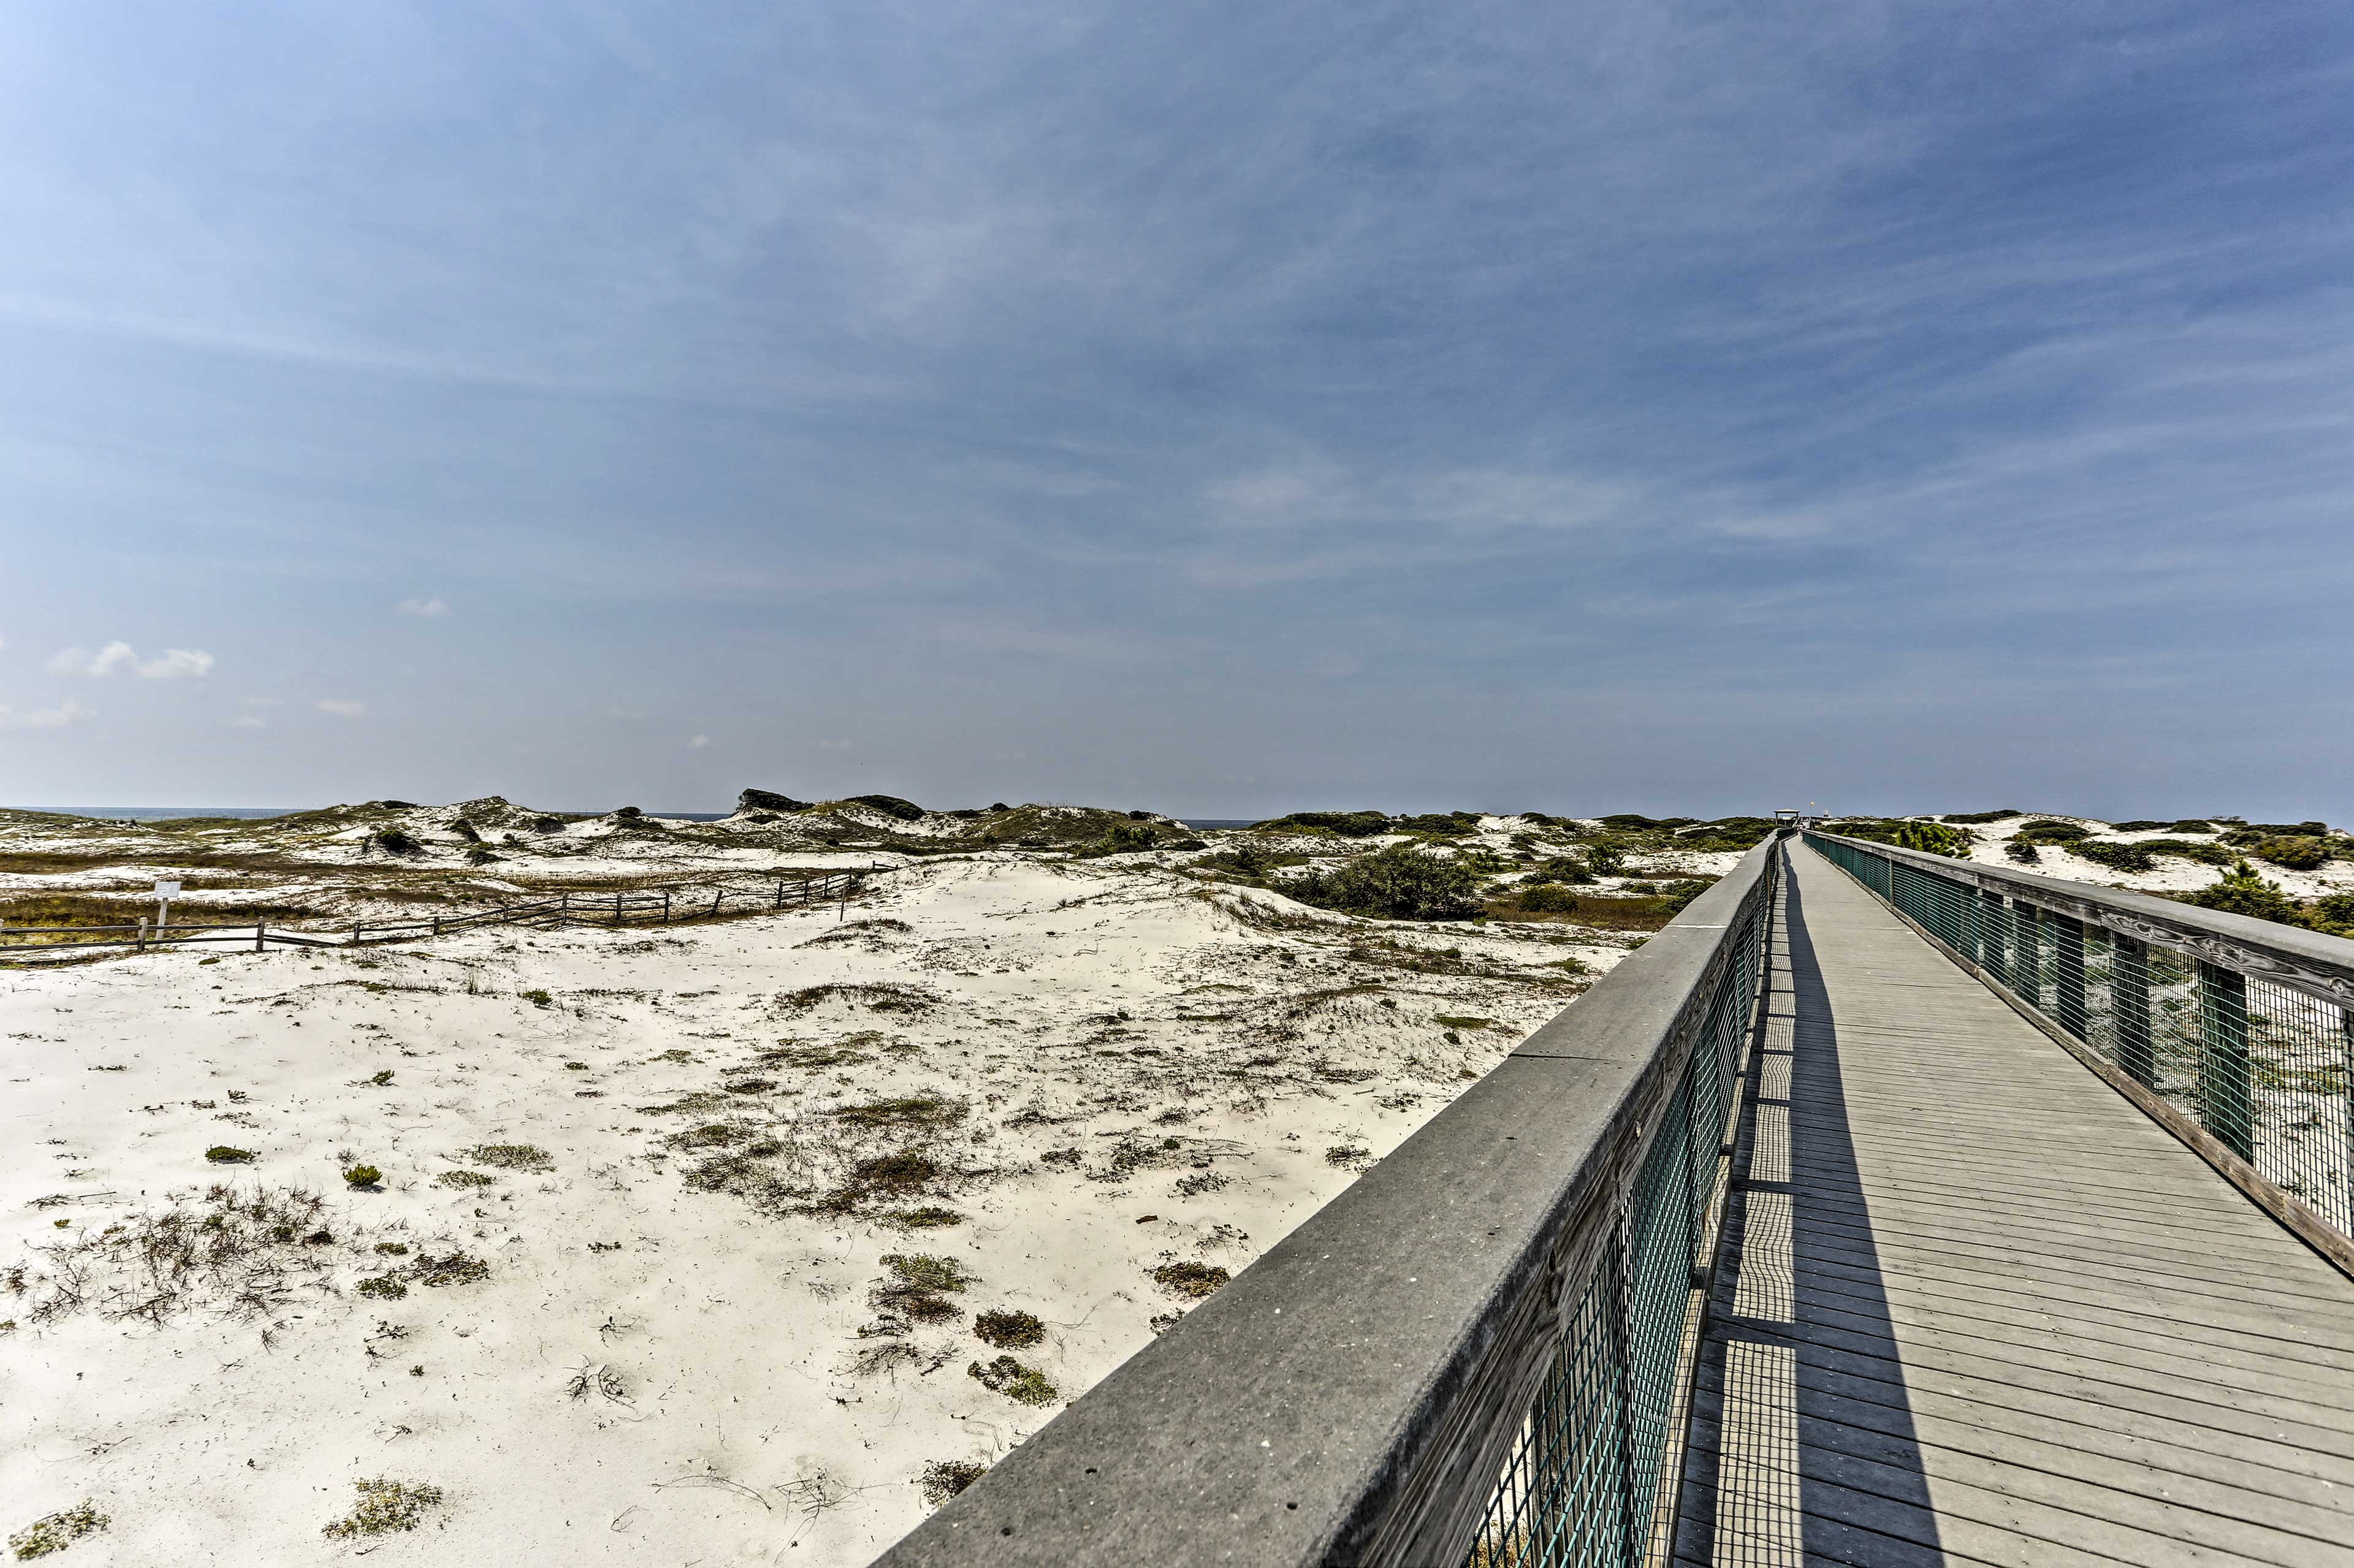 Stroll down to the water through the scenic sand dunes.